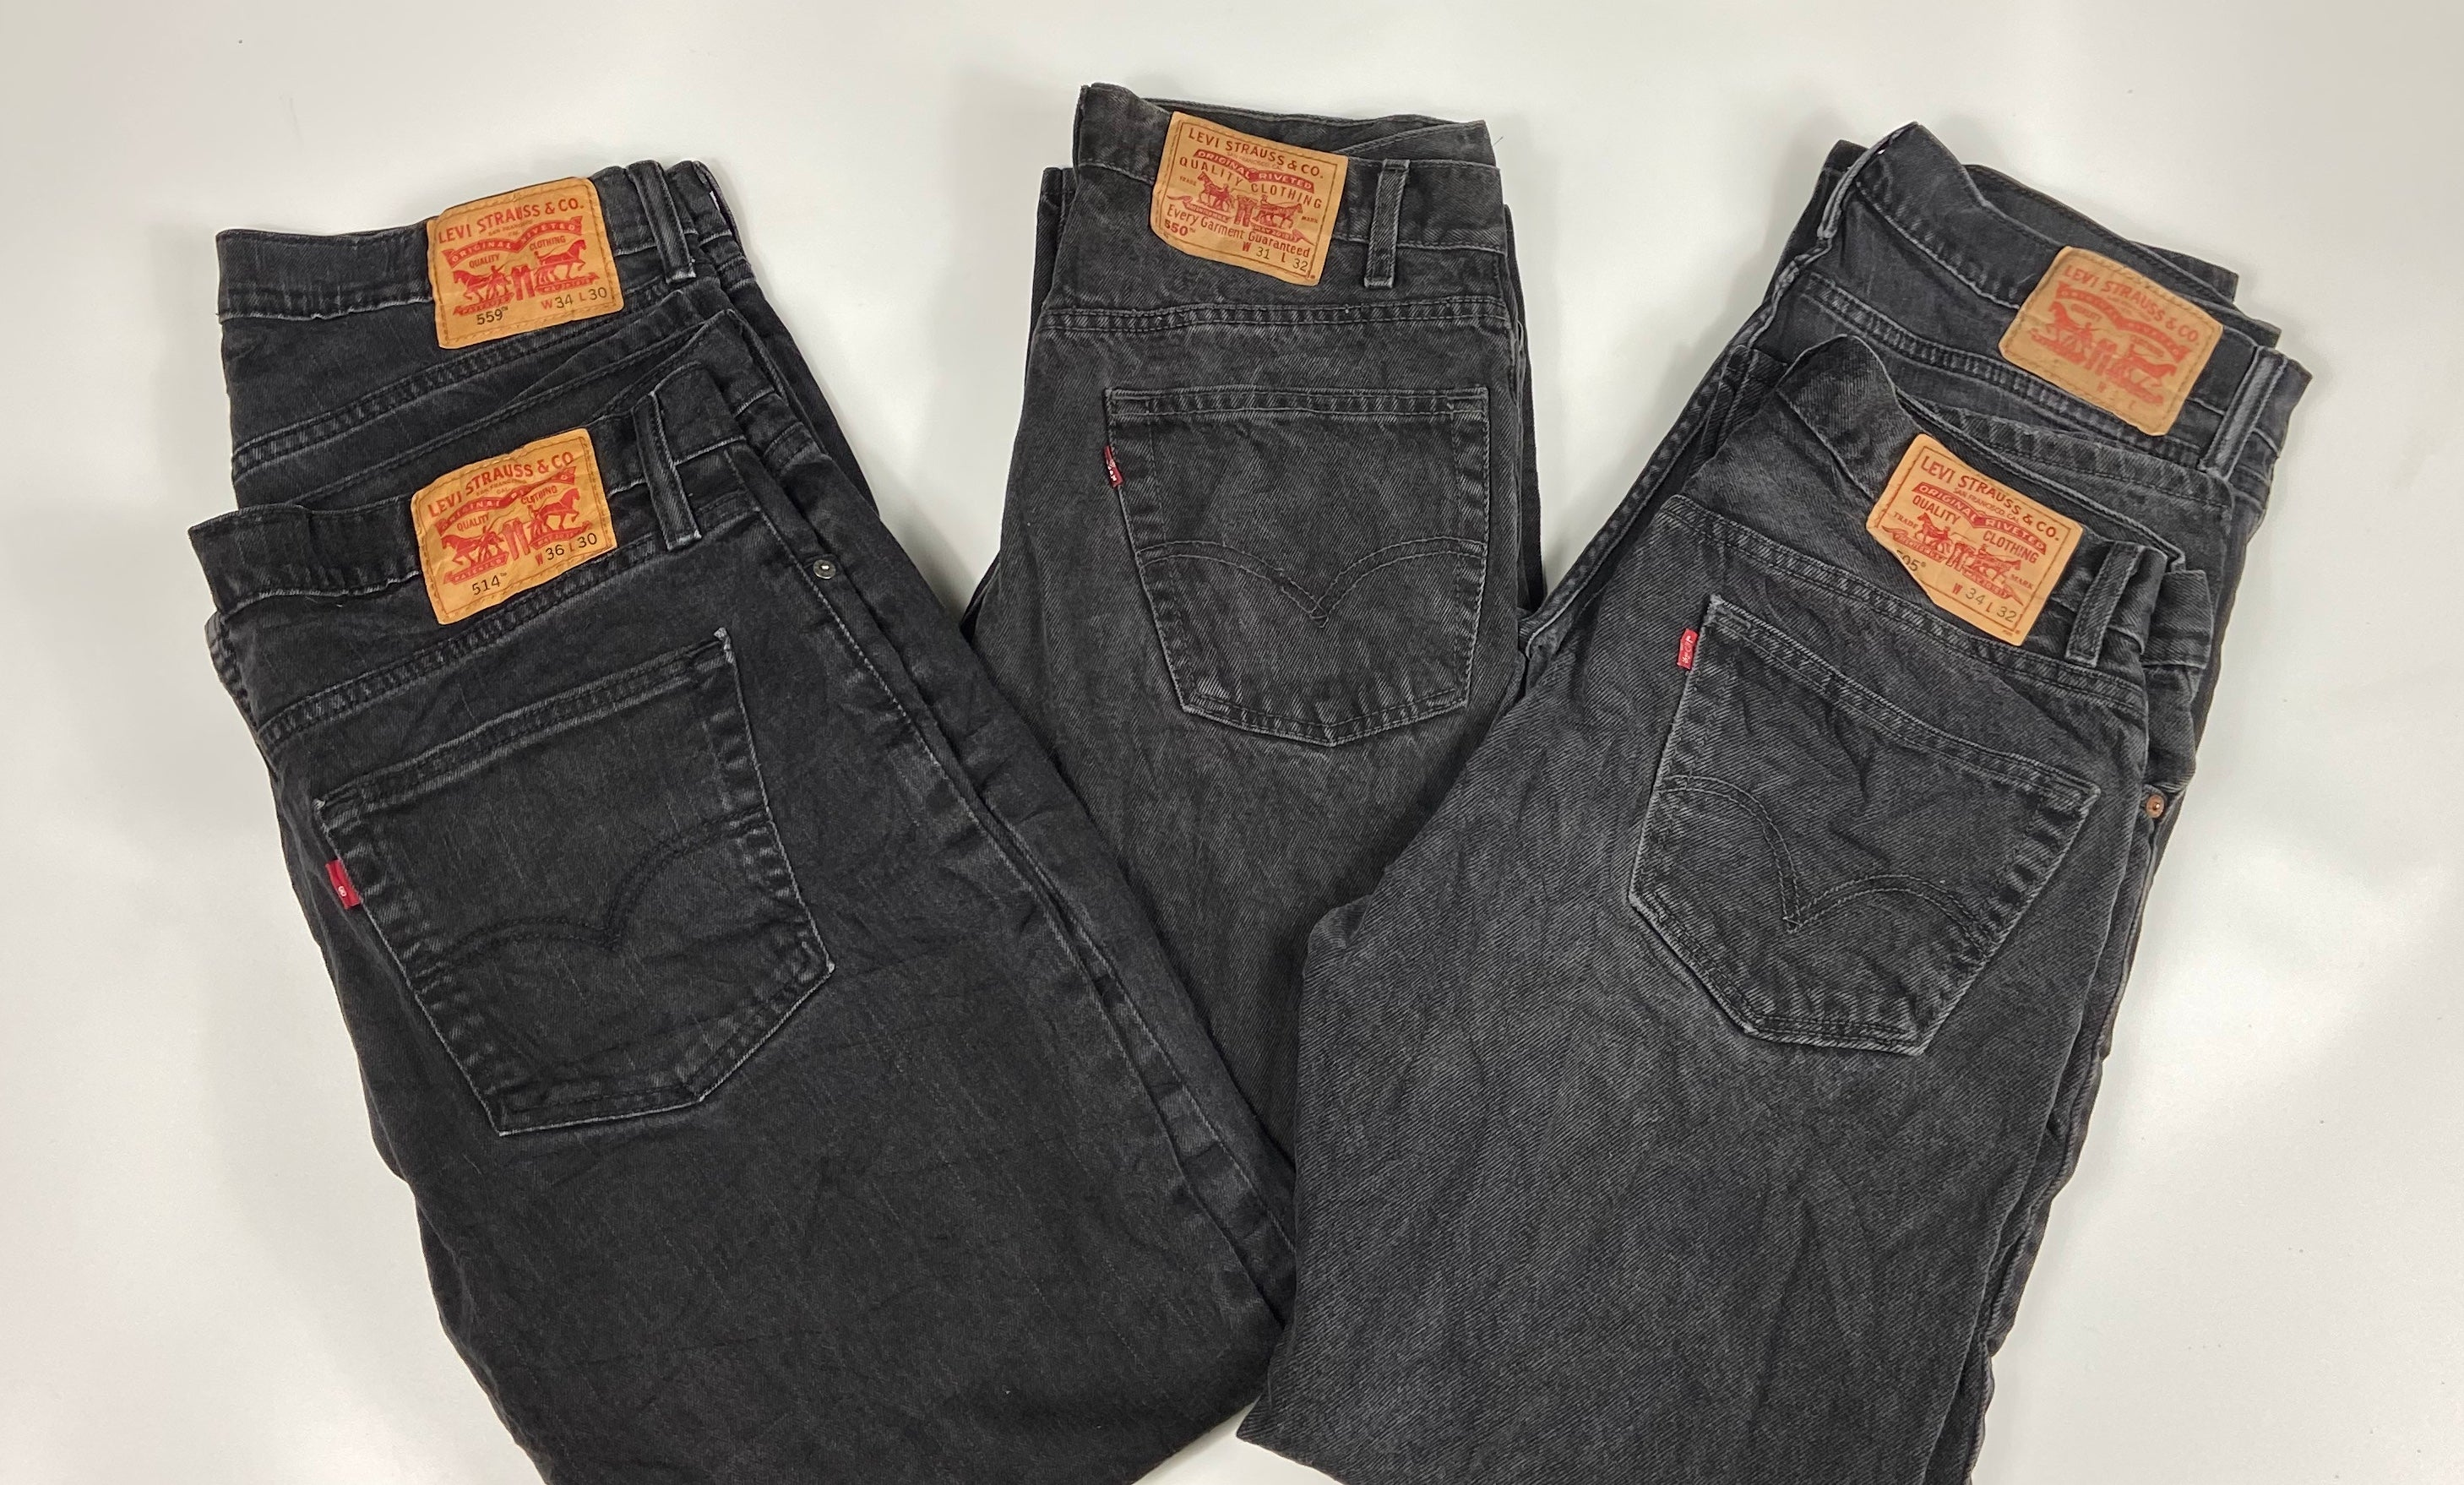 Vintage Original Levi's 501 Button Fly Jeans Waist 44 Length 34